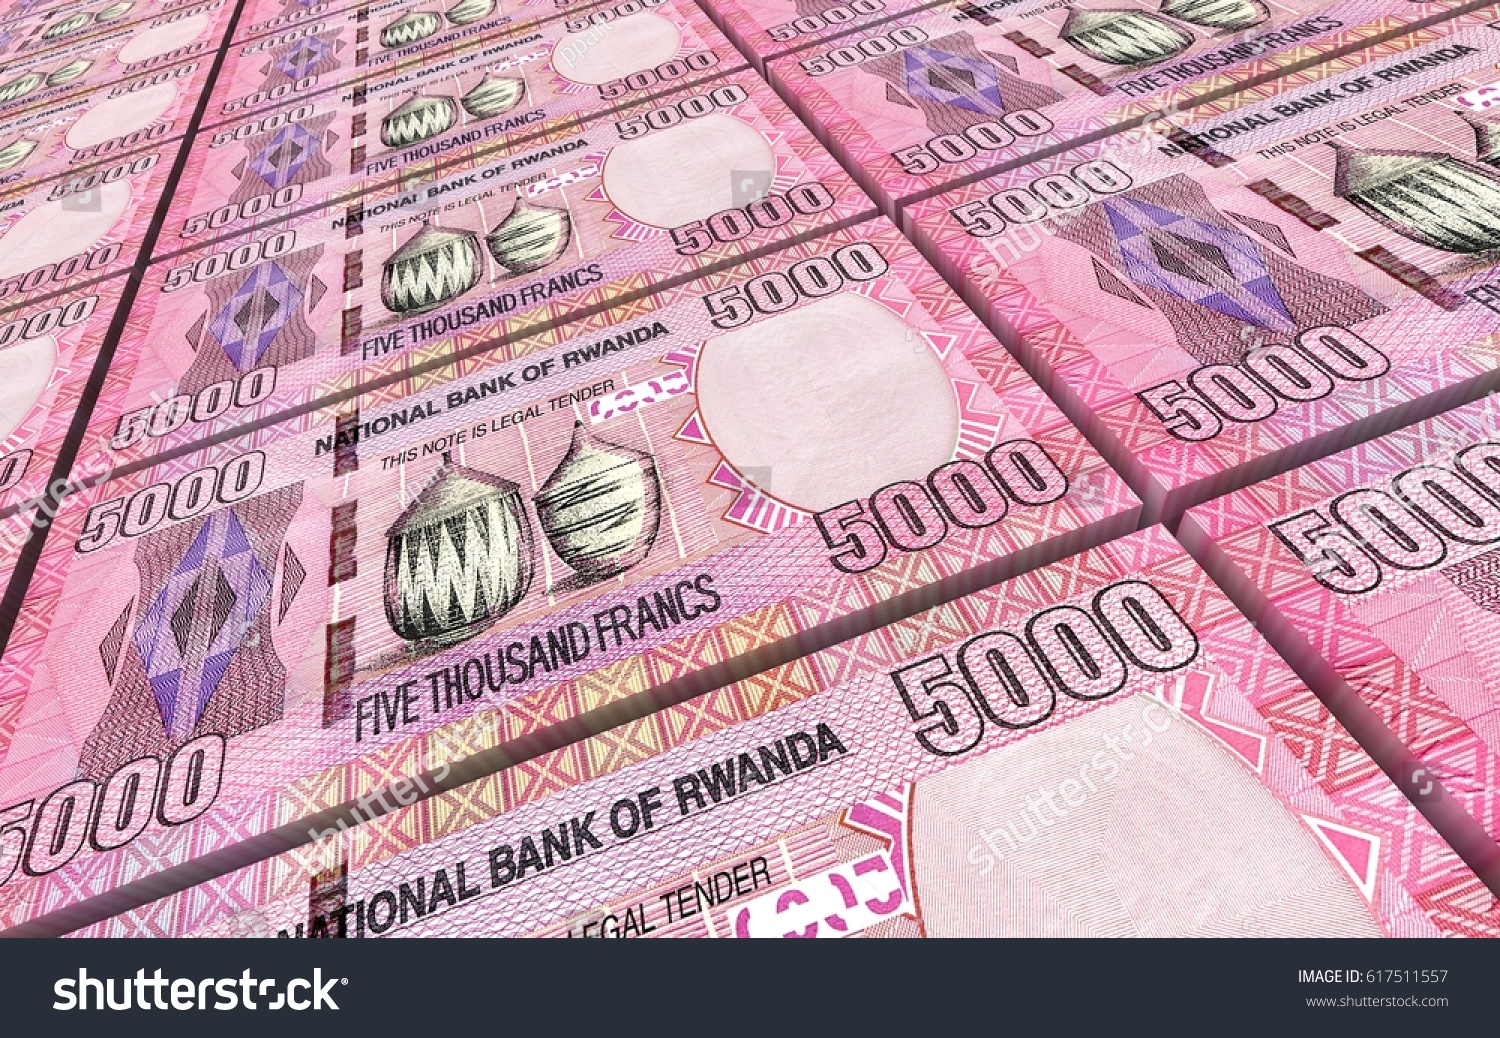 stock-photo-rwandan-francs-bills-stacked-background-d-illustration-617511557.jpg